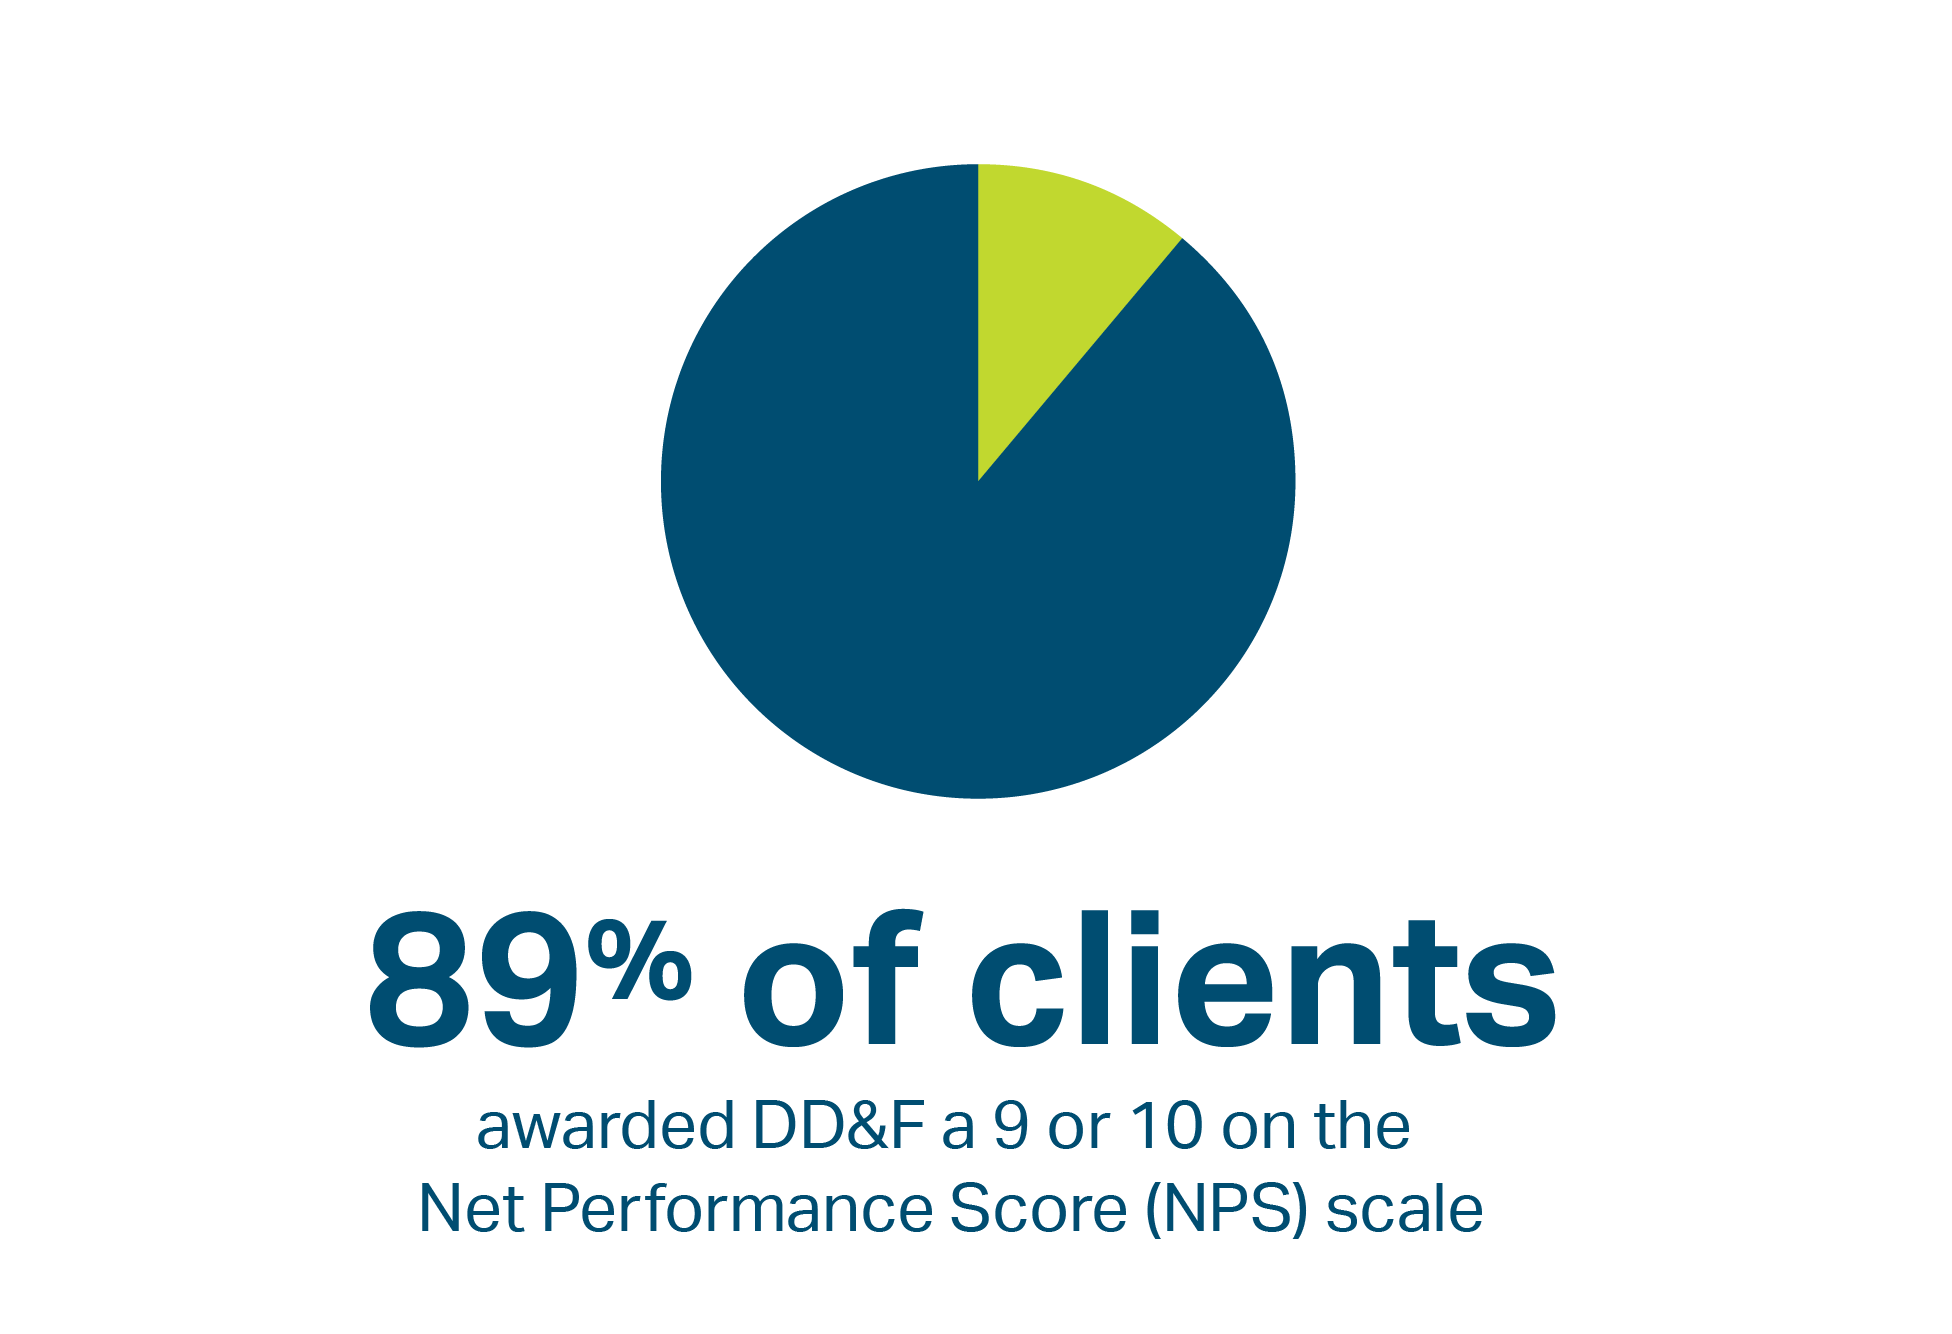 89% of clients awarded DD&F a 9 or 10 Net Performance Score